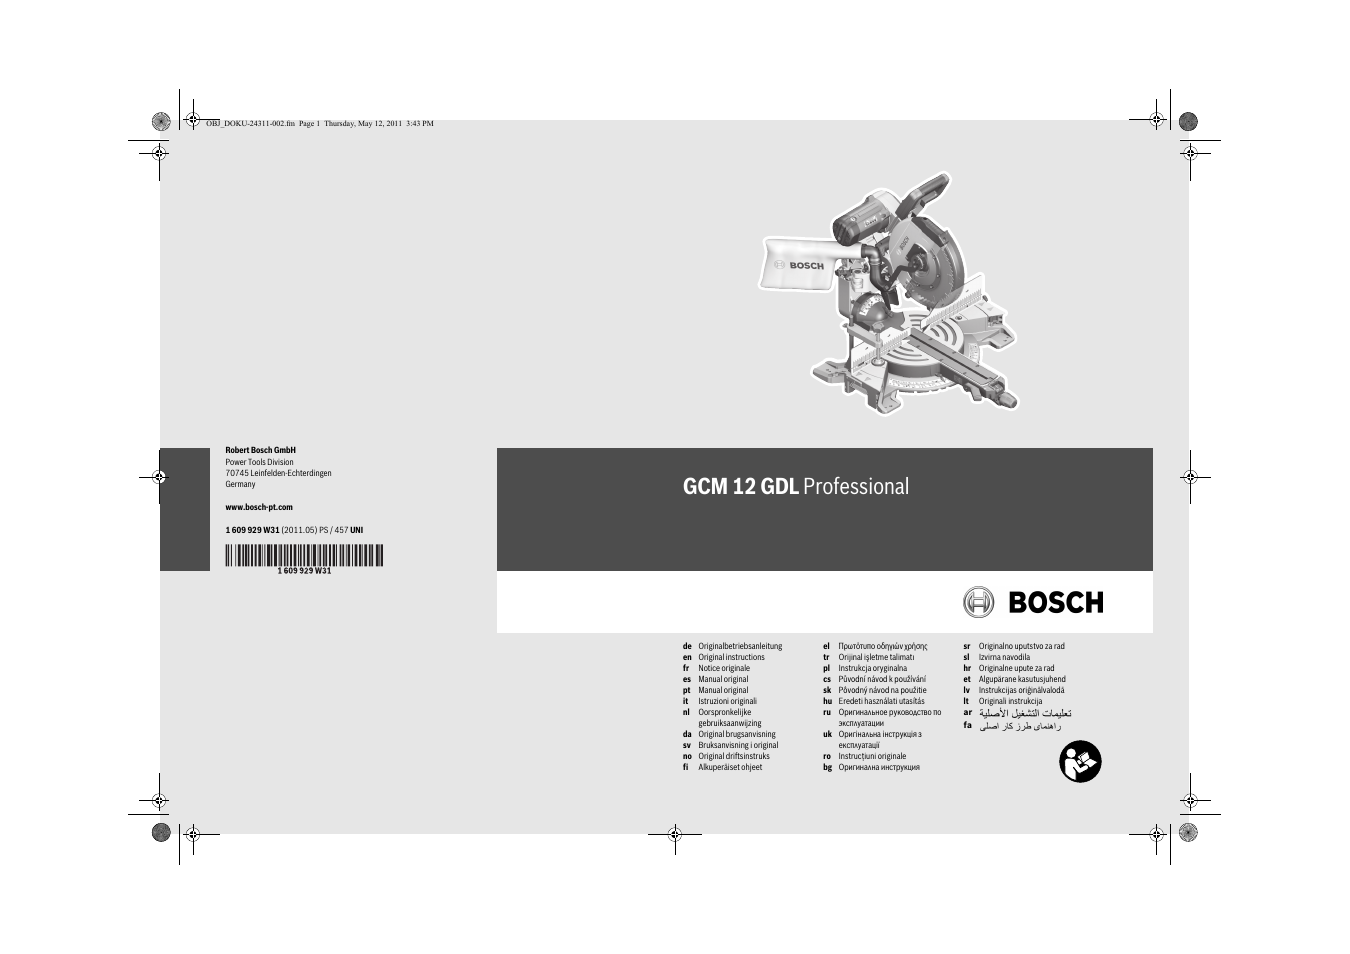 bosch gcm 12 gdl professional user manual 456 pages original mode. Black Bedroom Furniture Sets. Home Design Ideas